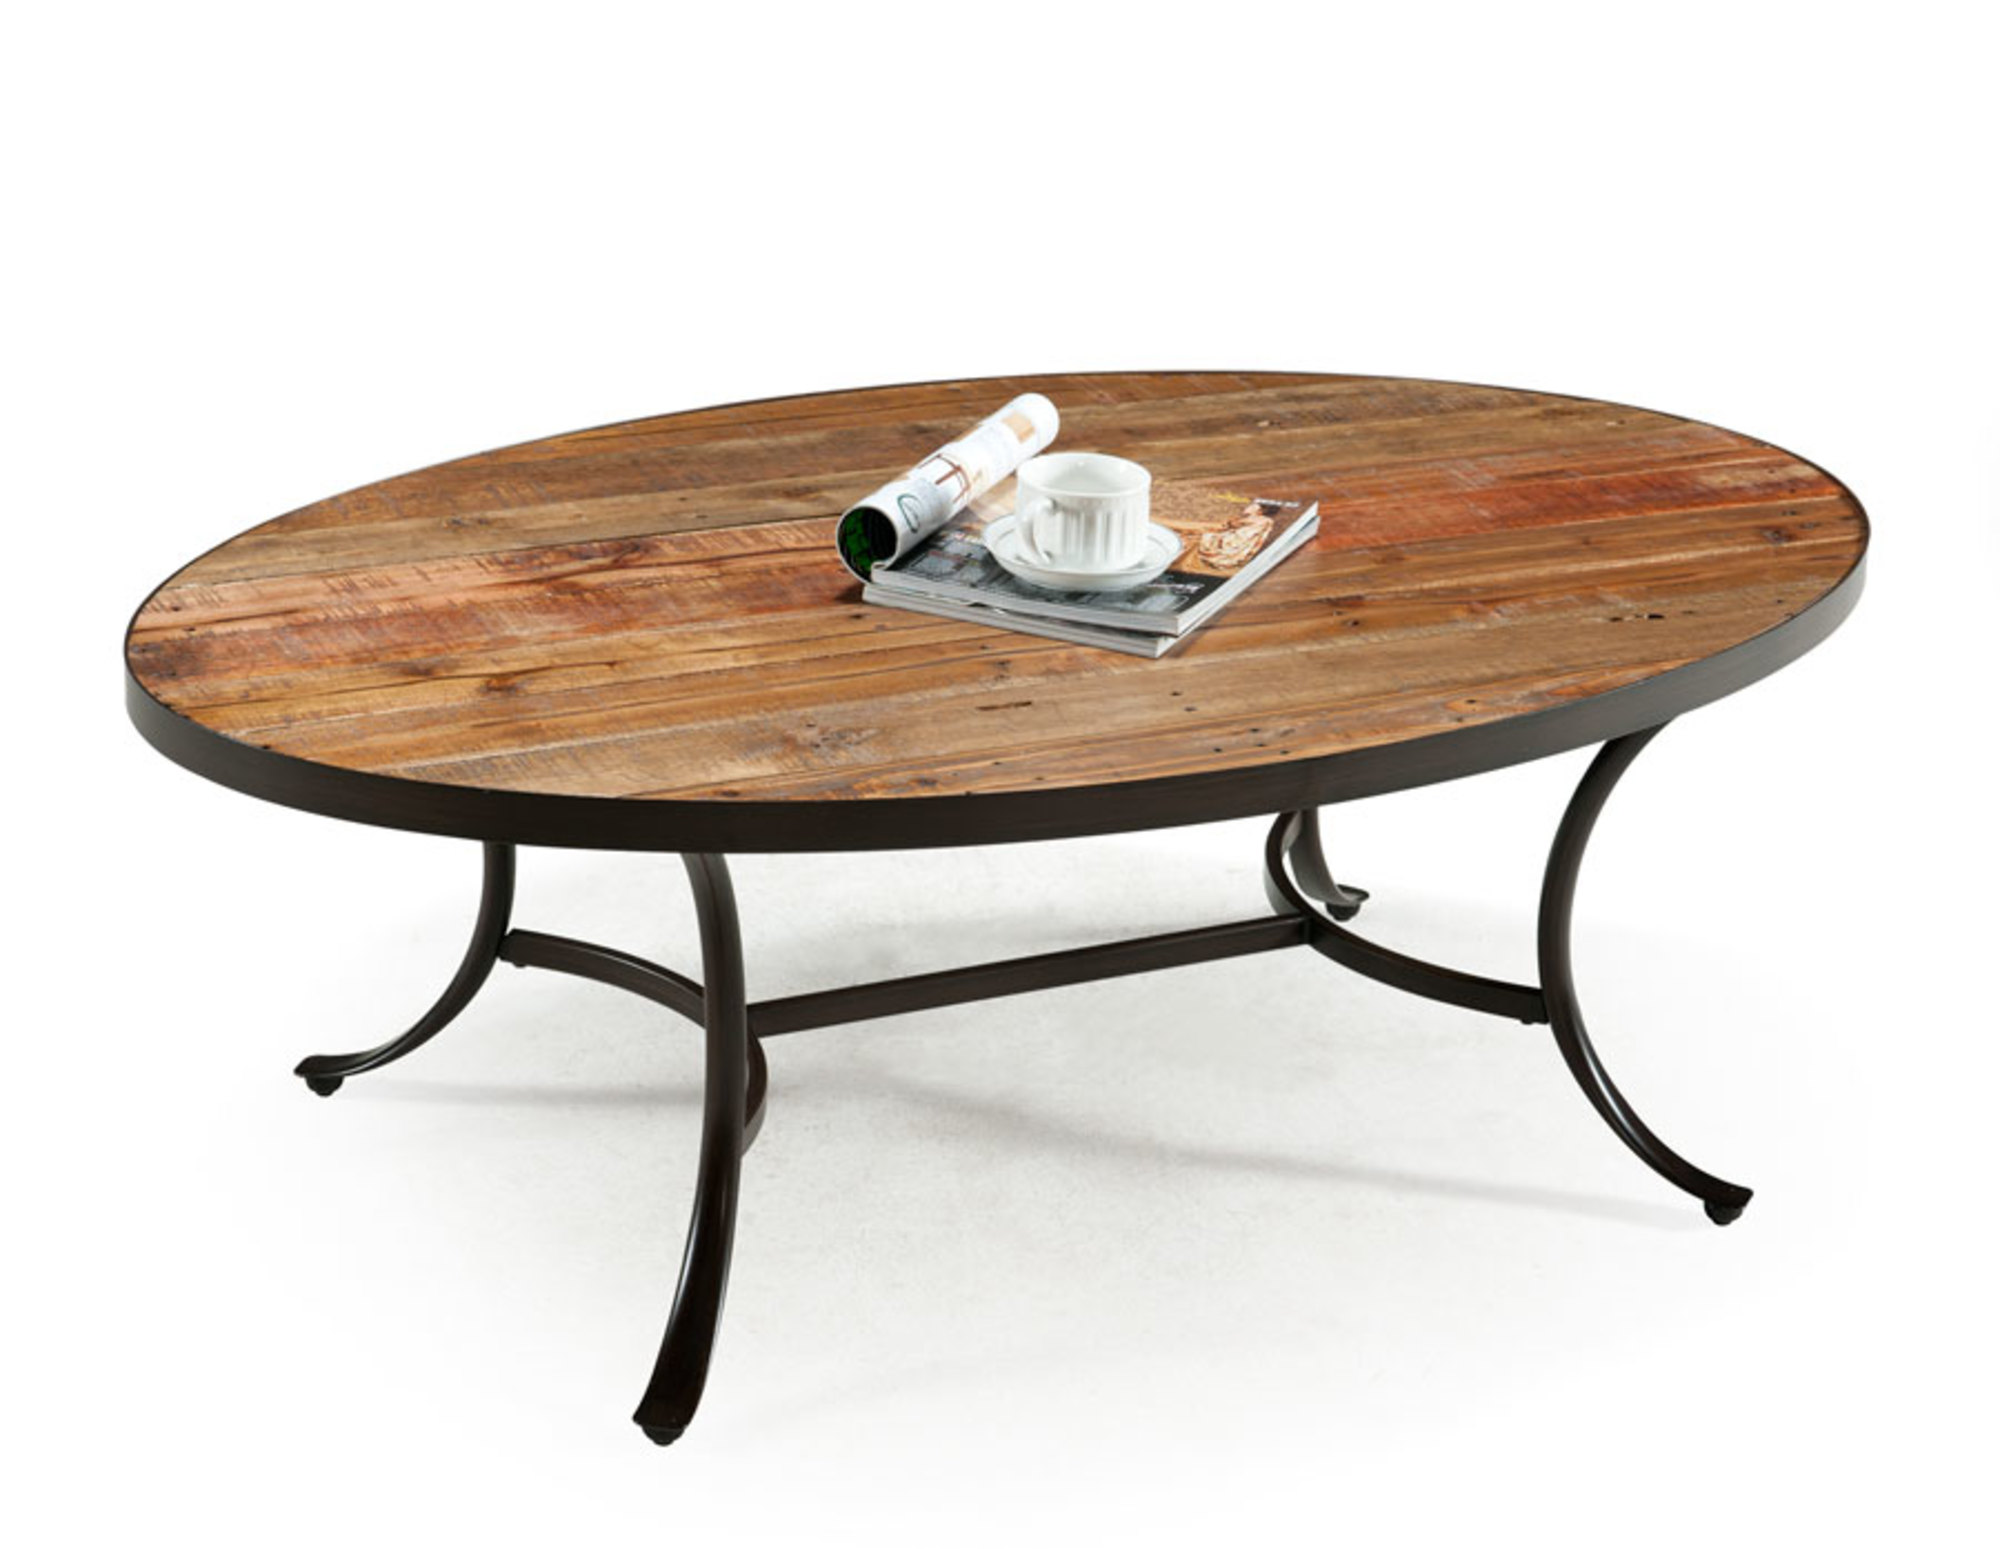 Emerald Home Berkeley Cocktail Table Oval Natural T140-0 by Emerald Home Furnishings, LLC